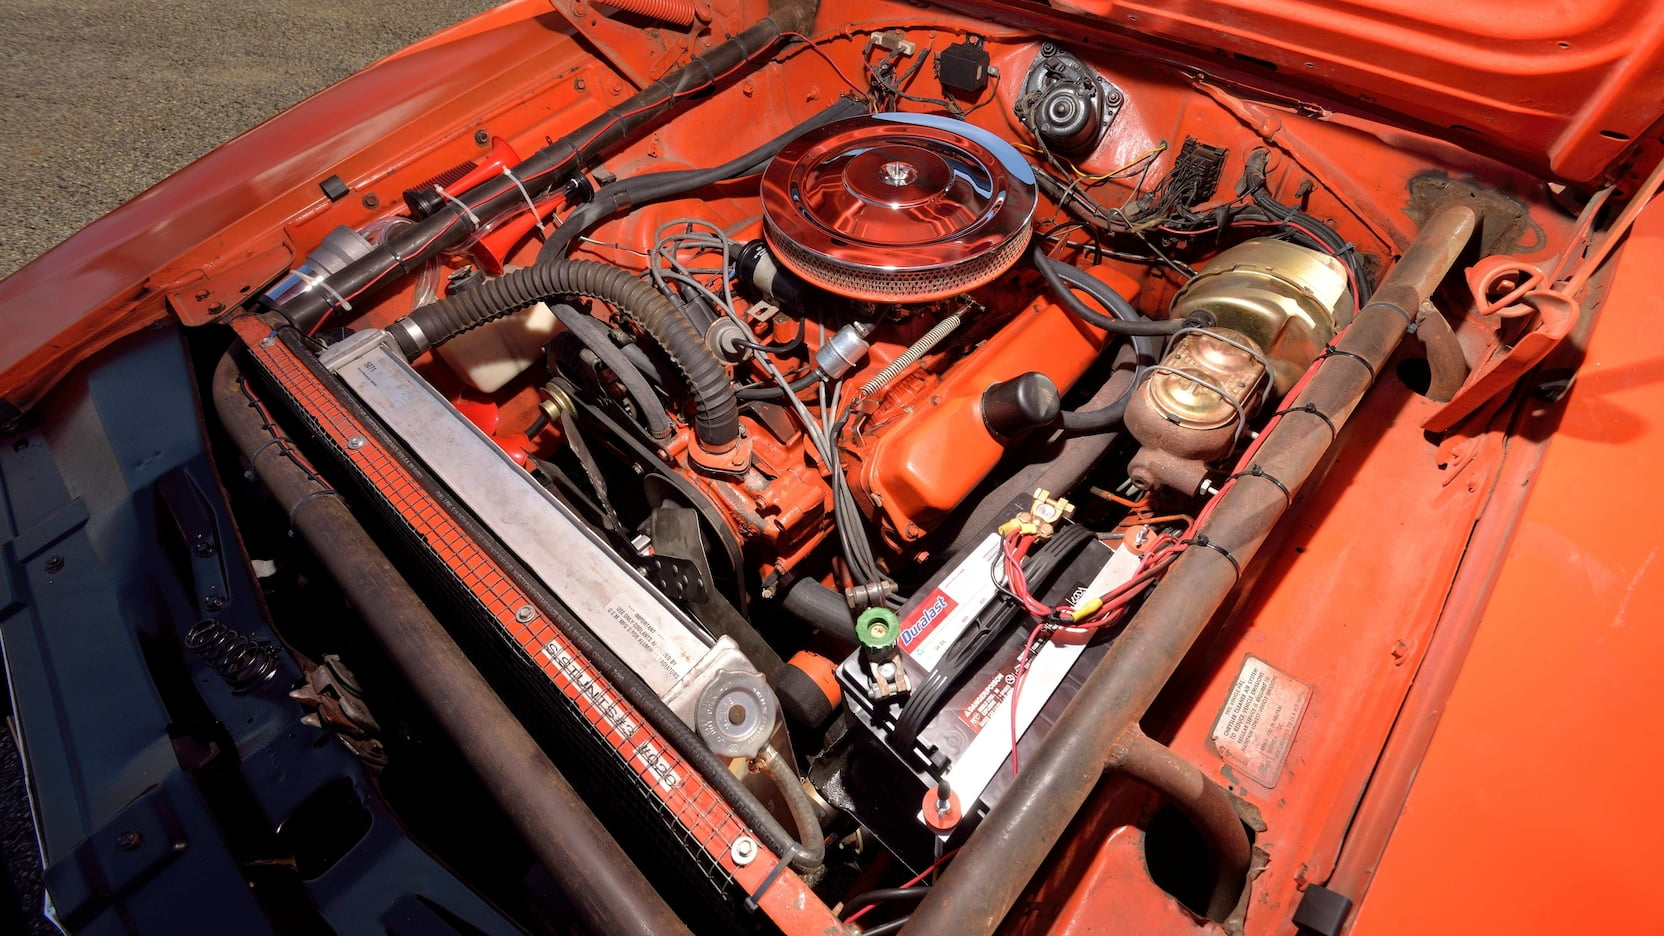 1969 Dodge Charger General Lee Stunt Car engine